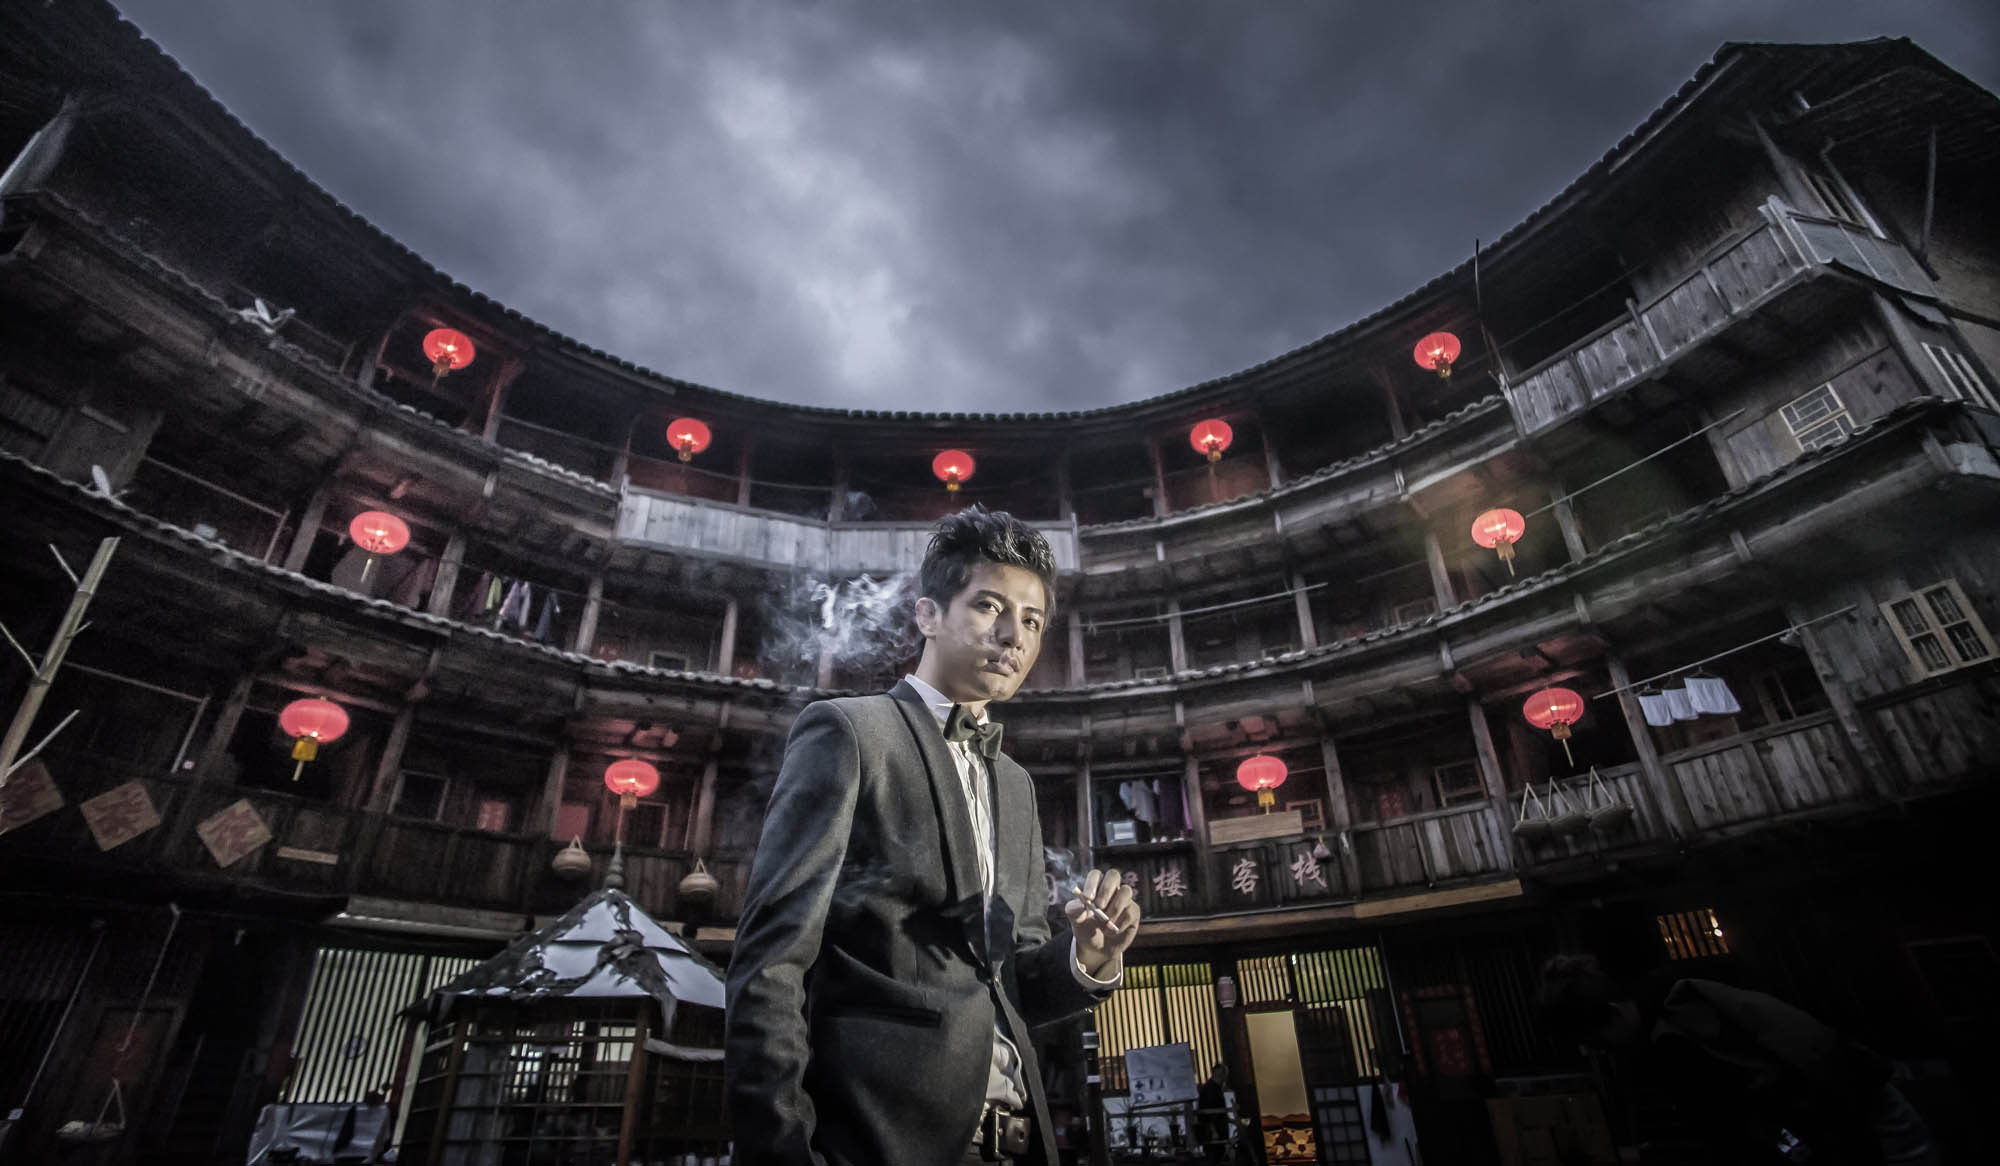 Groom smoking in front of famous Hong Kong movie site, by CM Leung